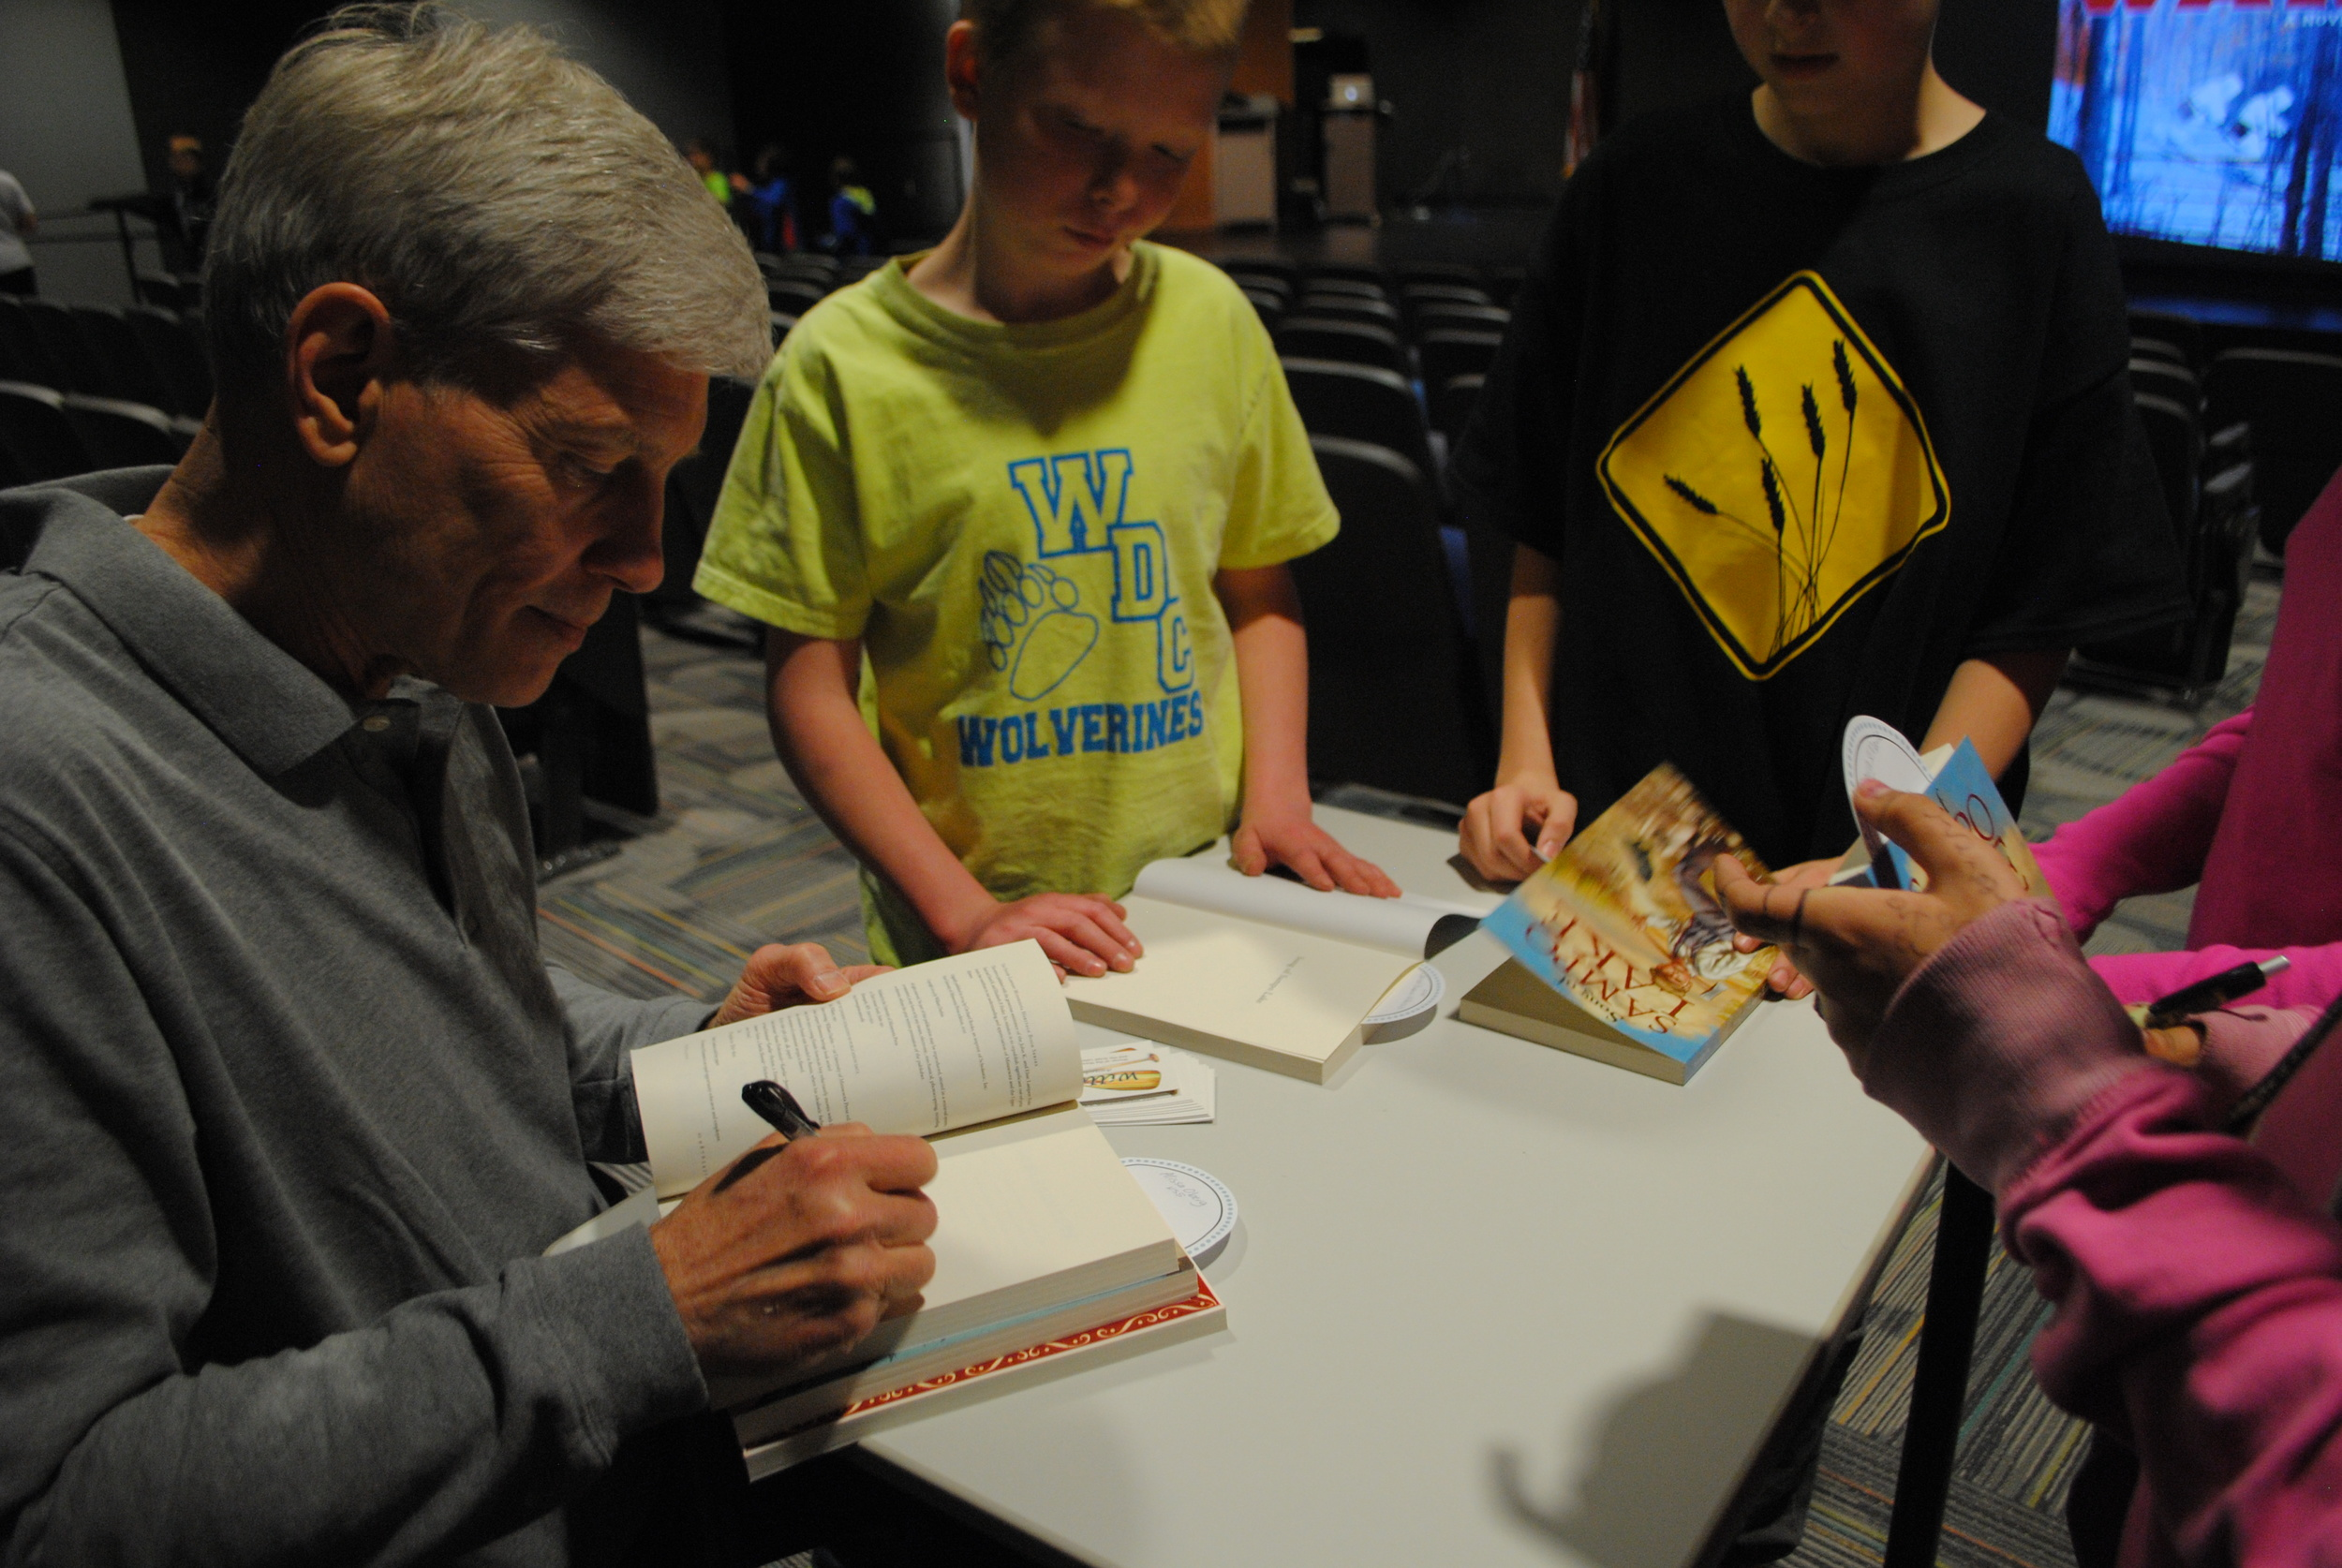 Durbin signing books for WDC students, who were excited to visit with the author one-on-one.